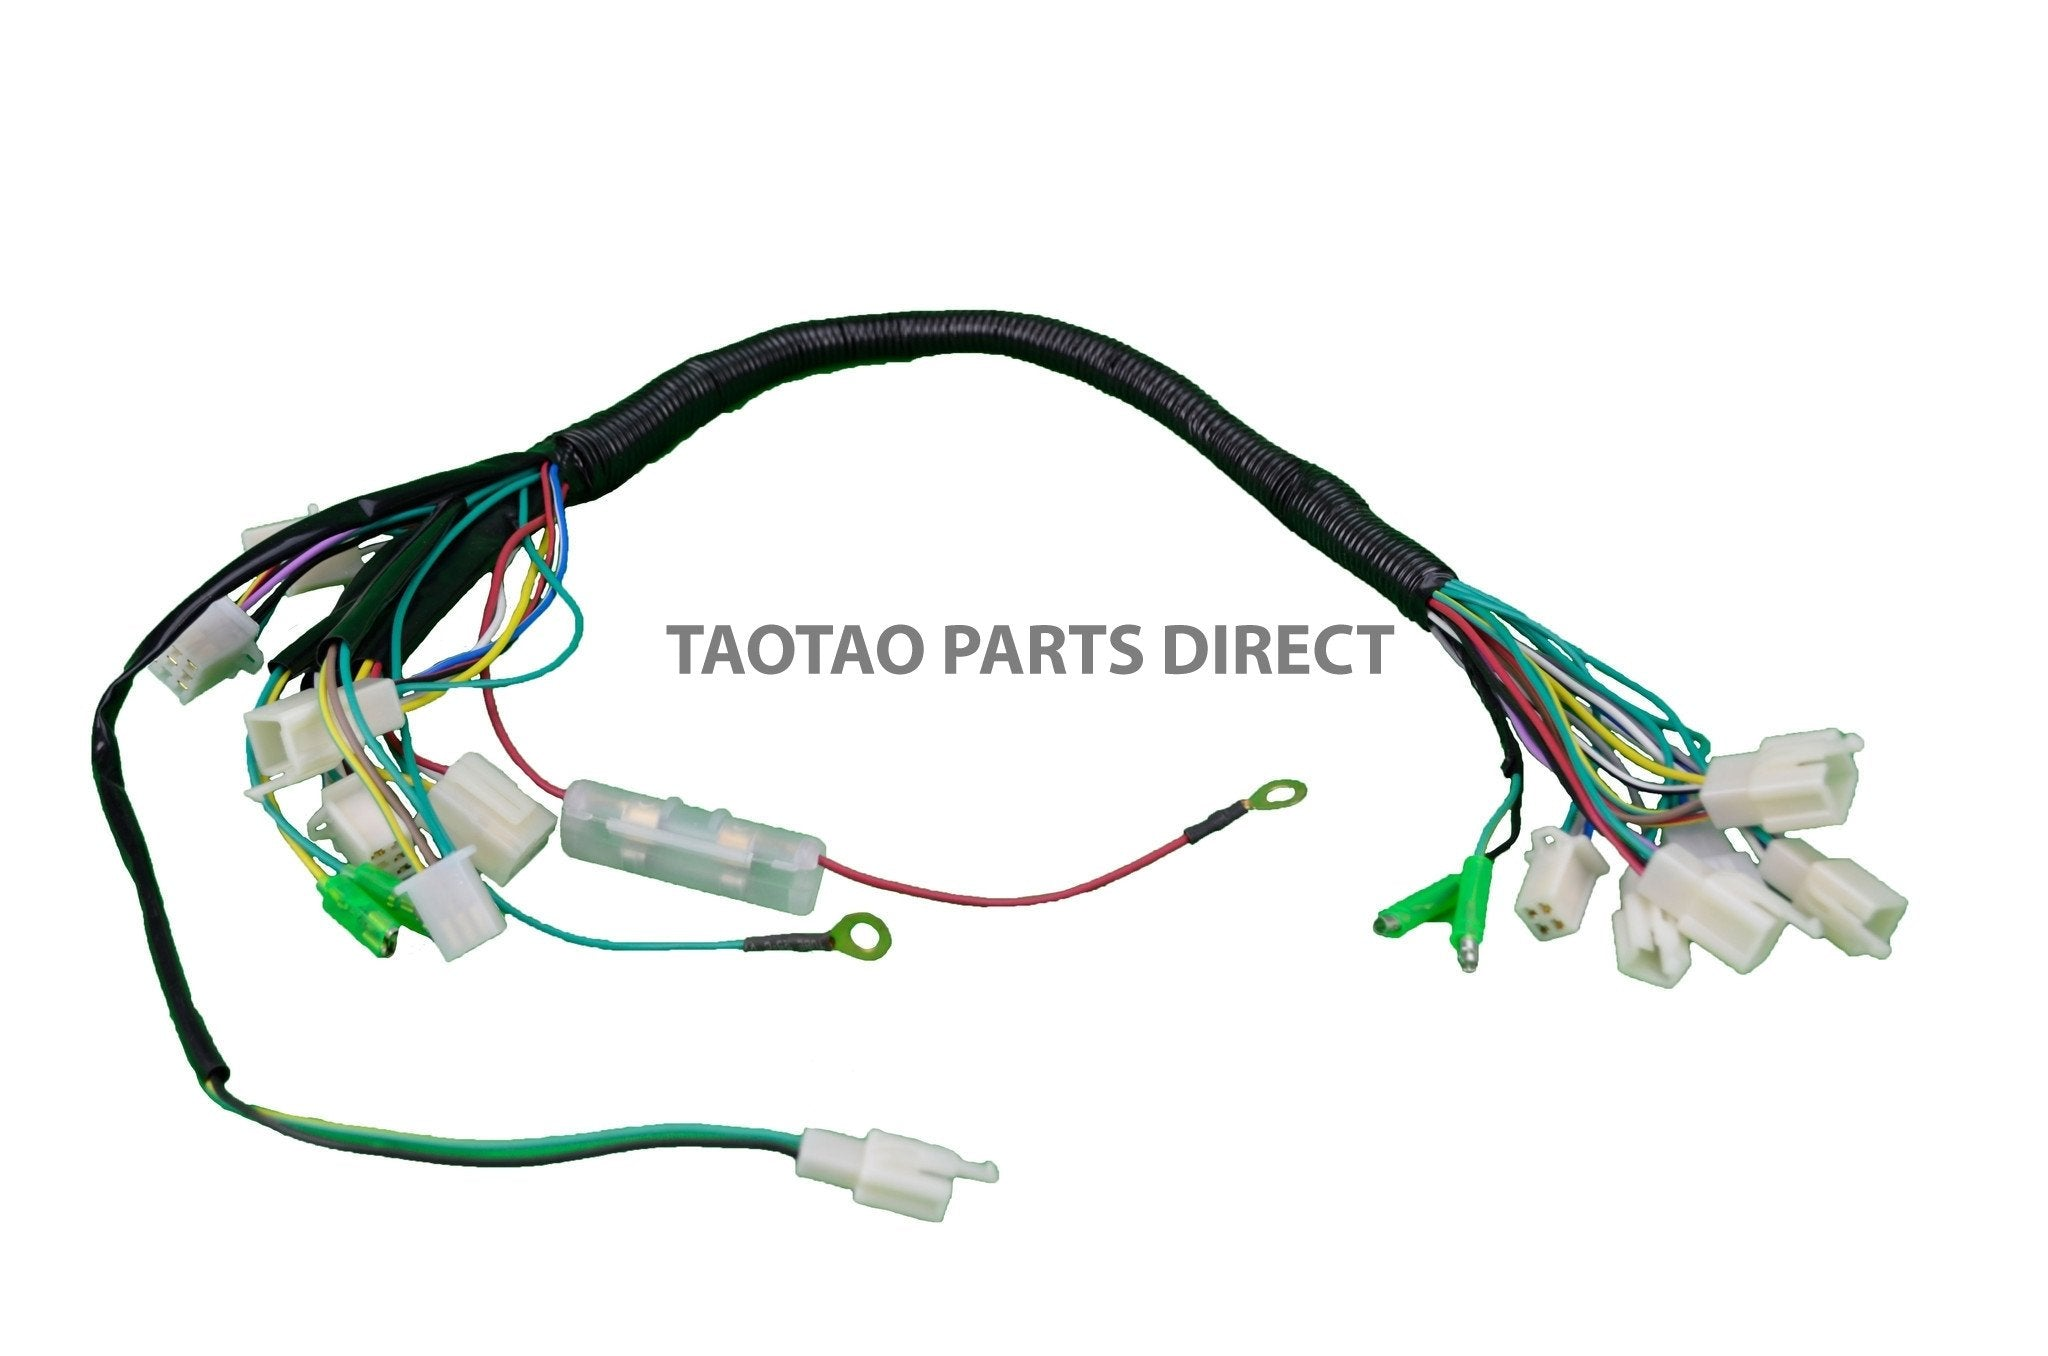 Ata110b Wire Harness 8 Taotao Parts Direct Electrical Wiring